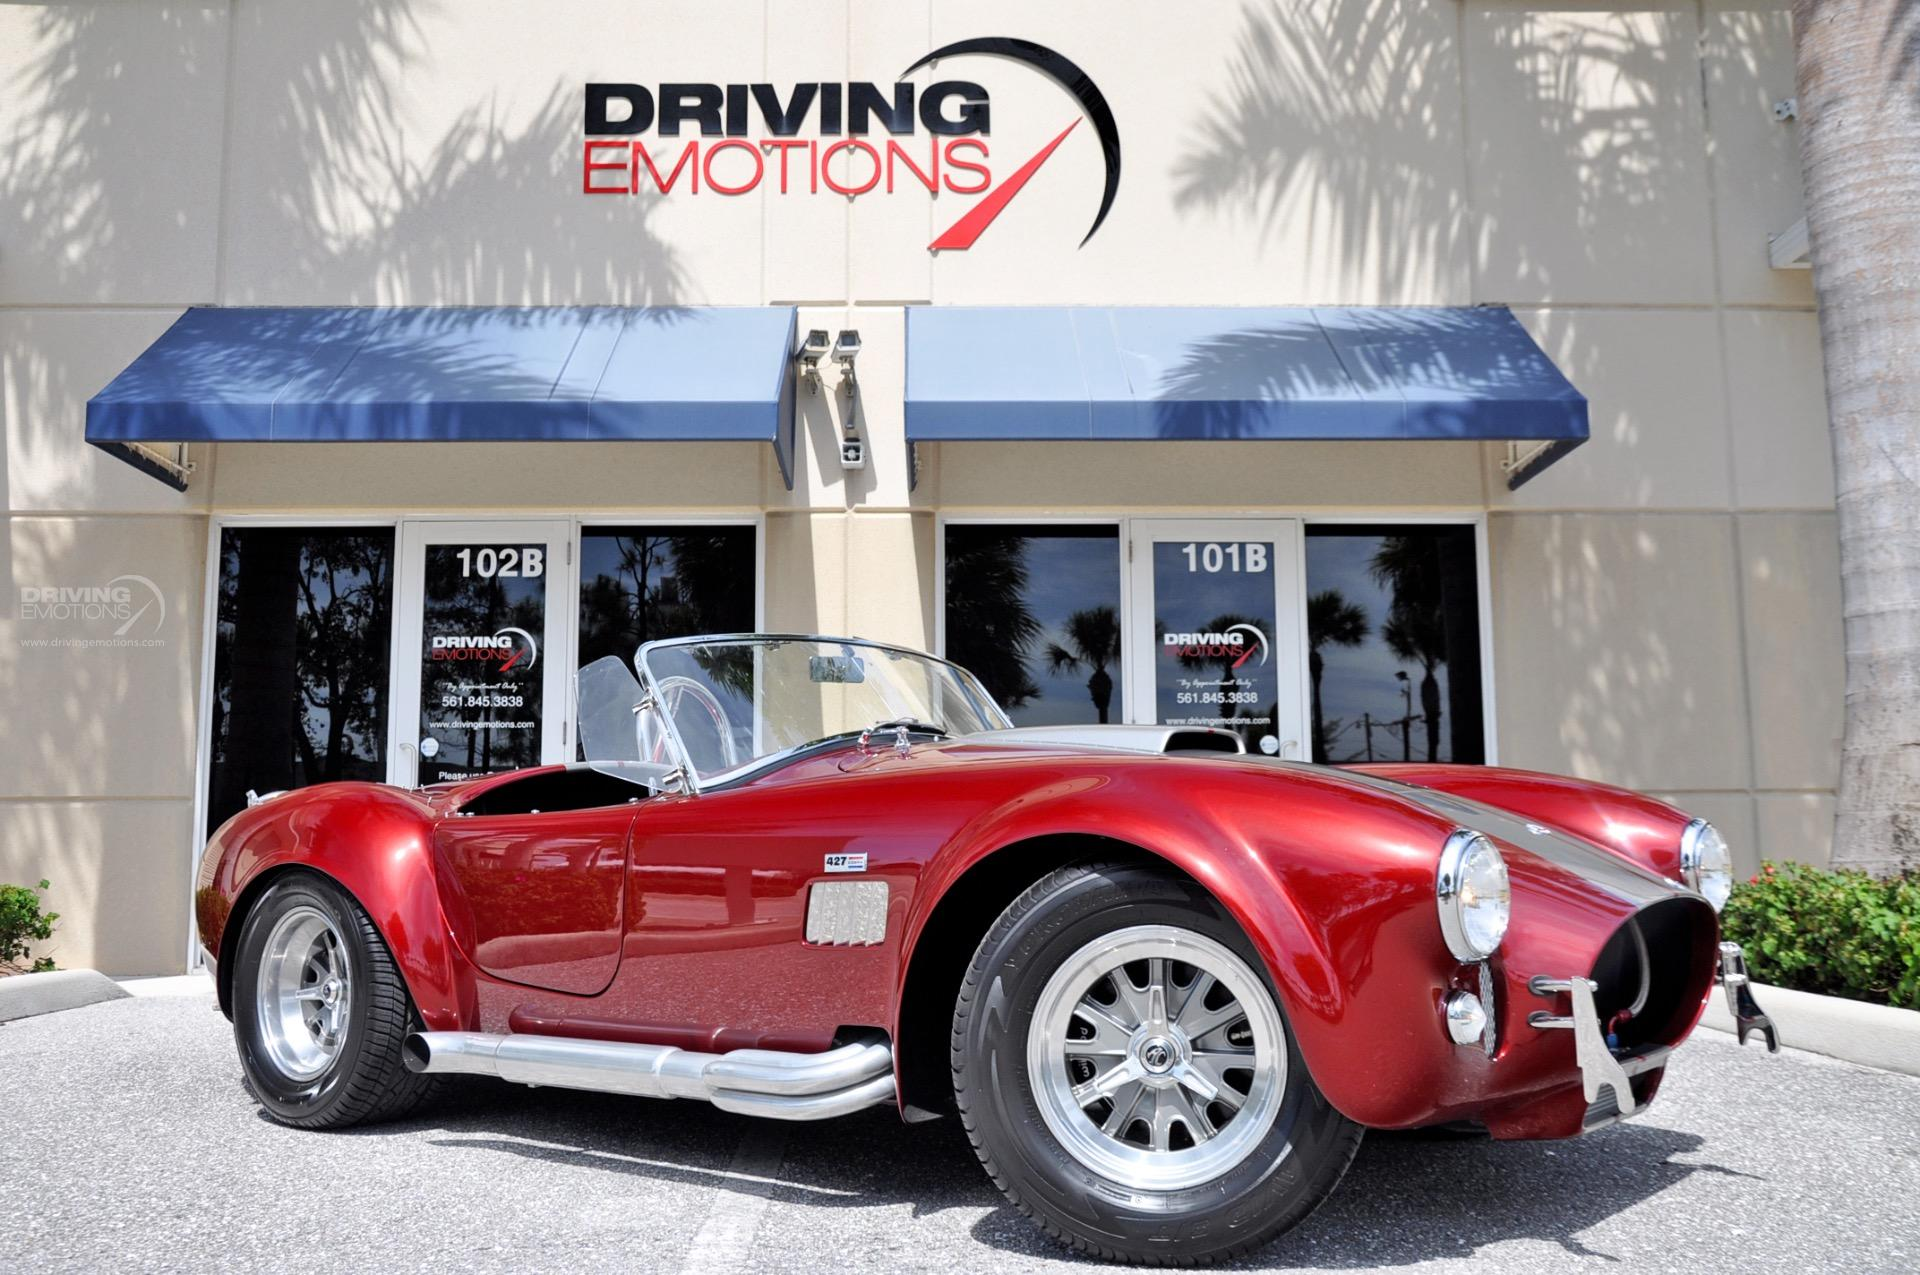 1965 Shelby Cobra Superformance MKIII Cobra: 1965 SUPERFORMANCE COBRA MKIII SHELBY COBRA REPLICA! 427 ROUSH! LOW MILES! RARE!